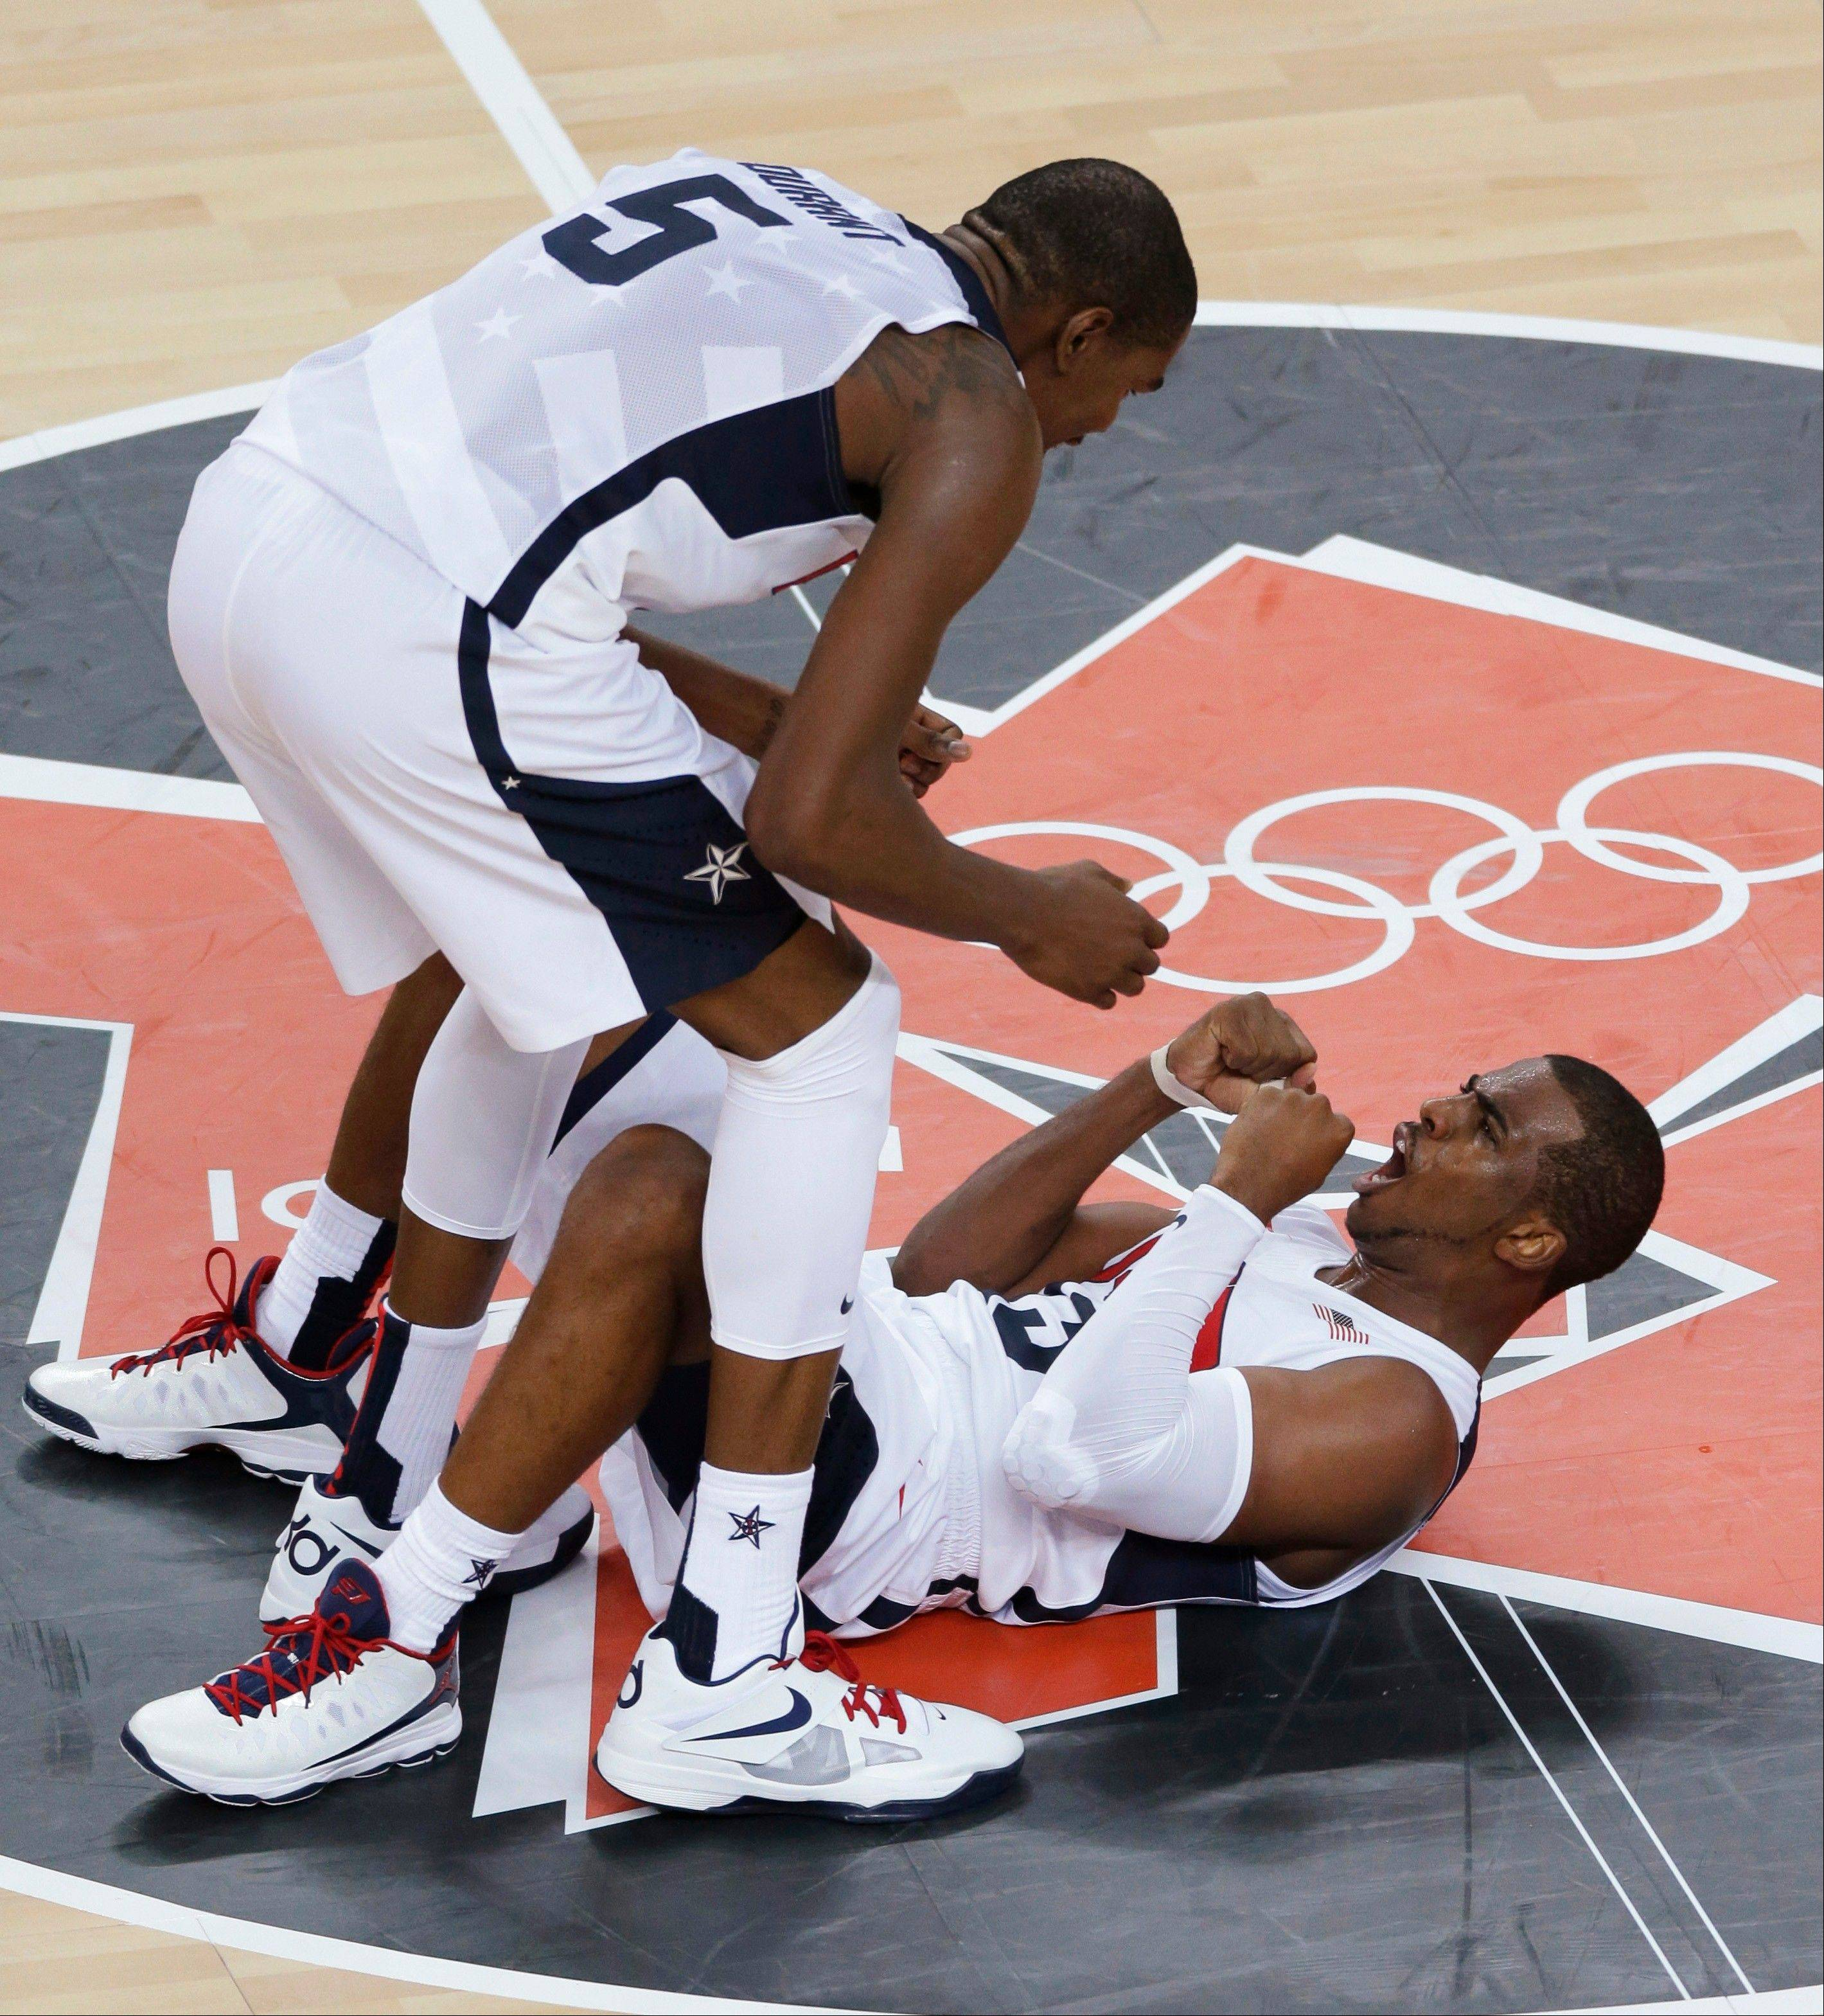 United States' Kevin Durant and Chris Paul celebrate during the men's gold medal basketball game against Spain at the 2012 Summer Olympics Sunday in London. The United States defeated Spain 107-100 to win the gold medal.